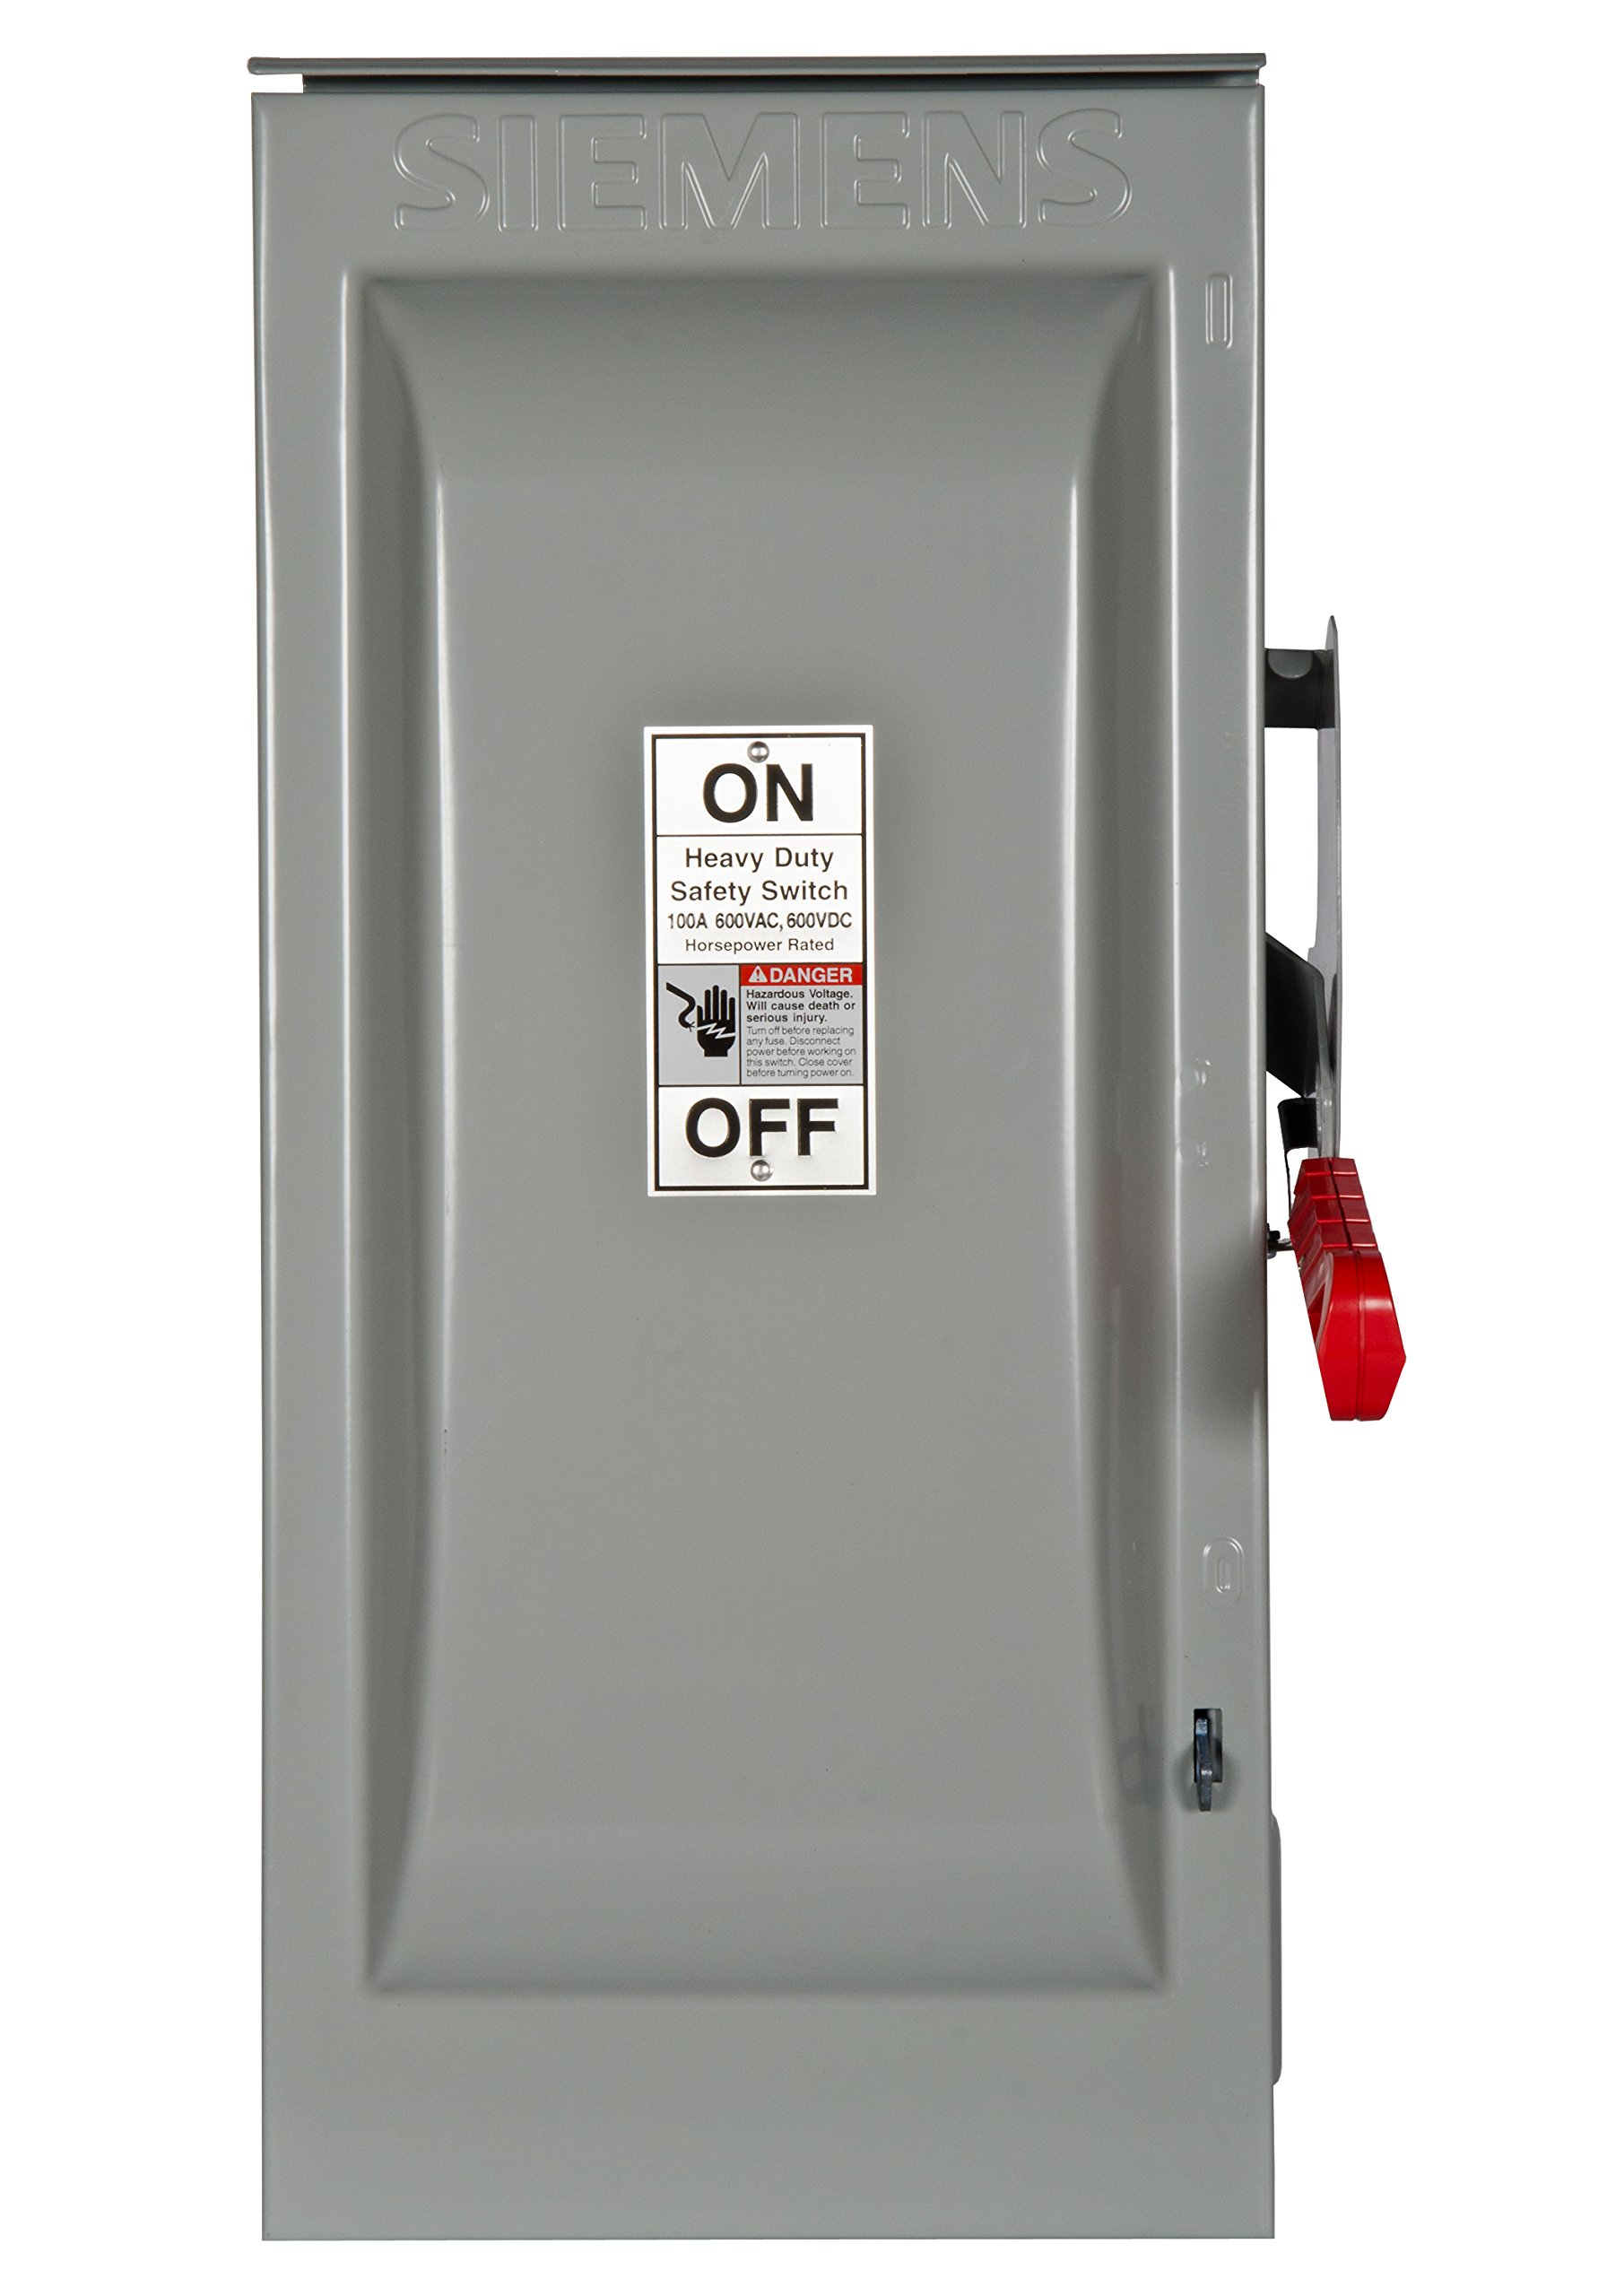 Siemens HNF363R 100-Amp 3 Pole 600-volt 3 Wire Non-Fused Heavy Duty Safety Switches by SIEMENS